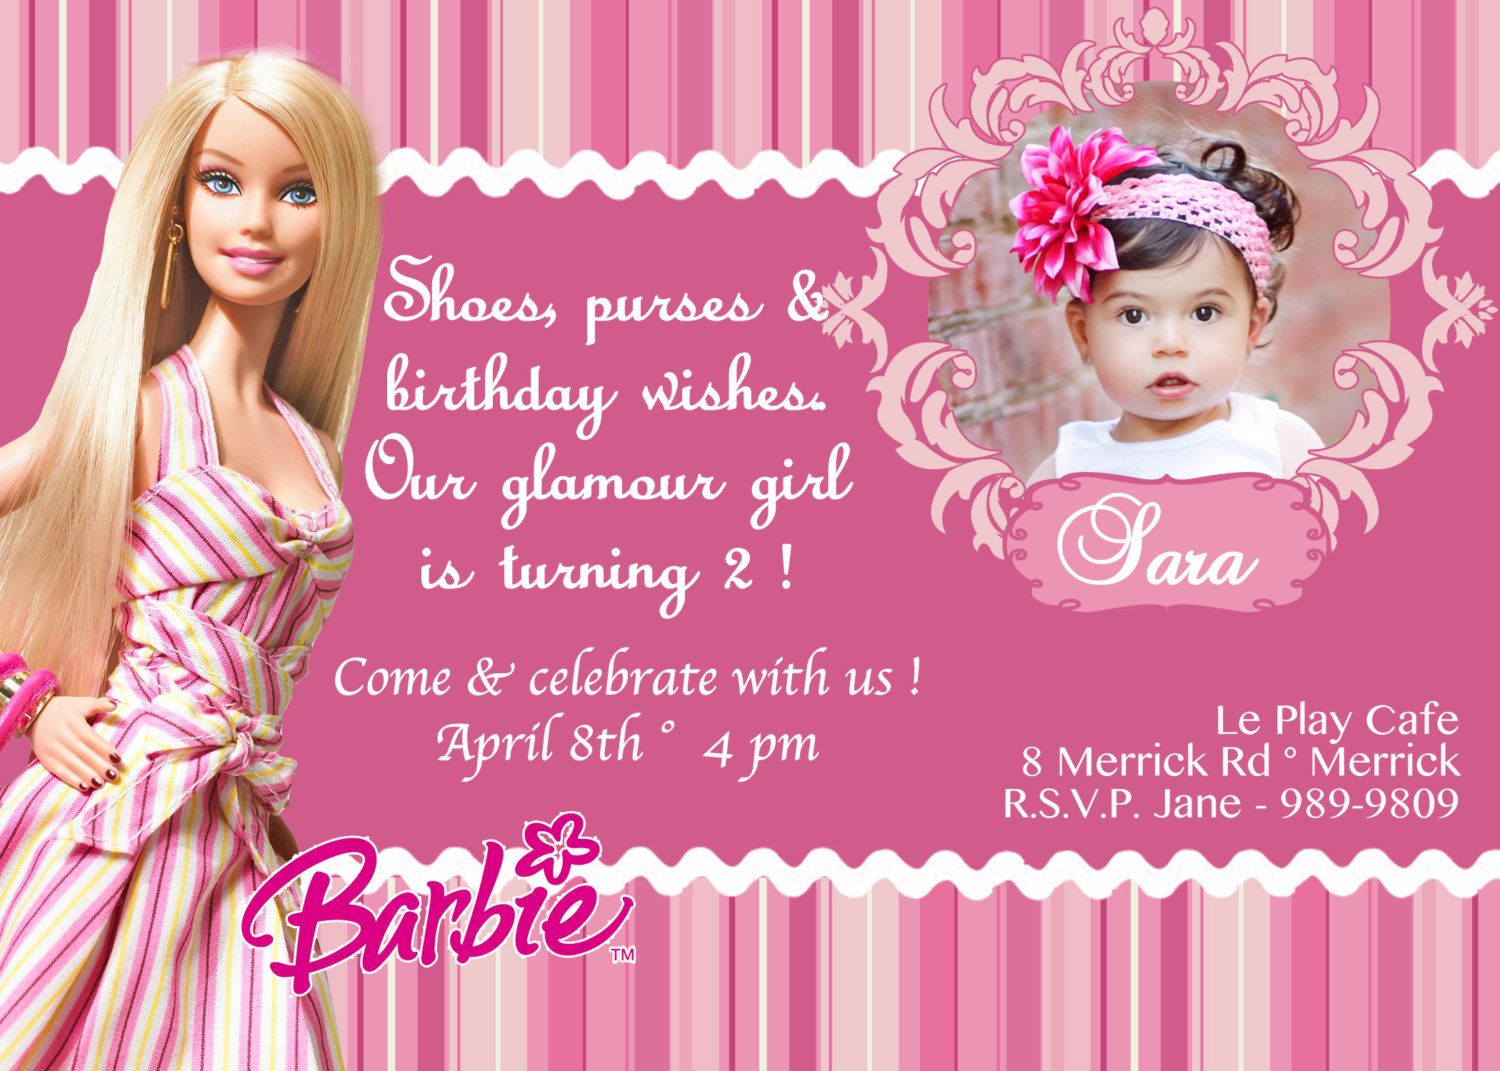 Birthday Invitations Card Pictures Barbie Birthday Invitations